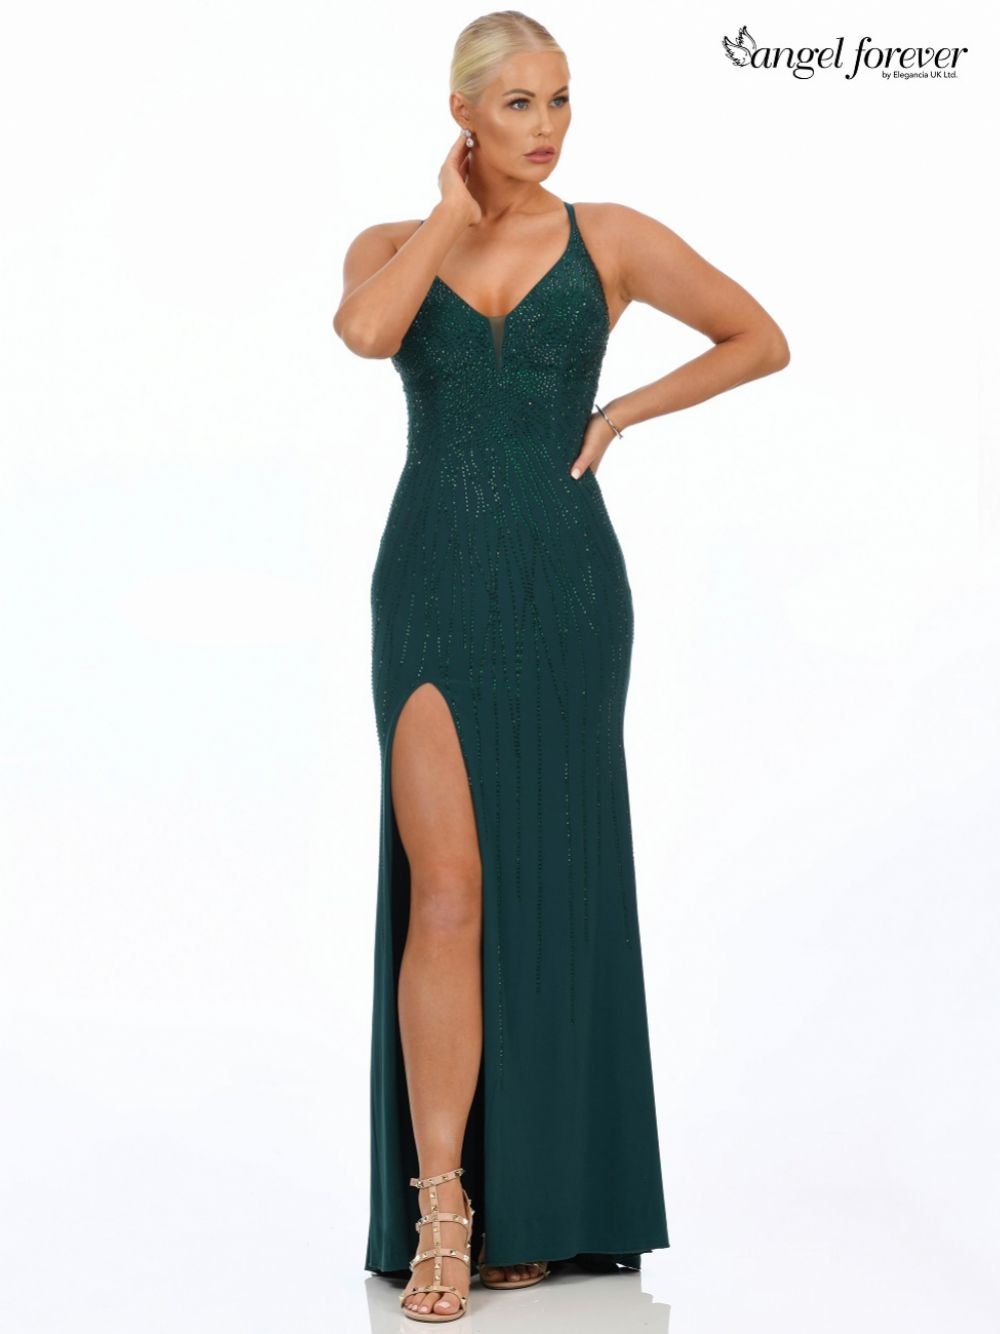 Angel Forever Diamante Embellished Fitted Prom Dress with Slit (Forest Green)